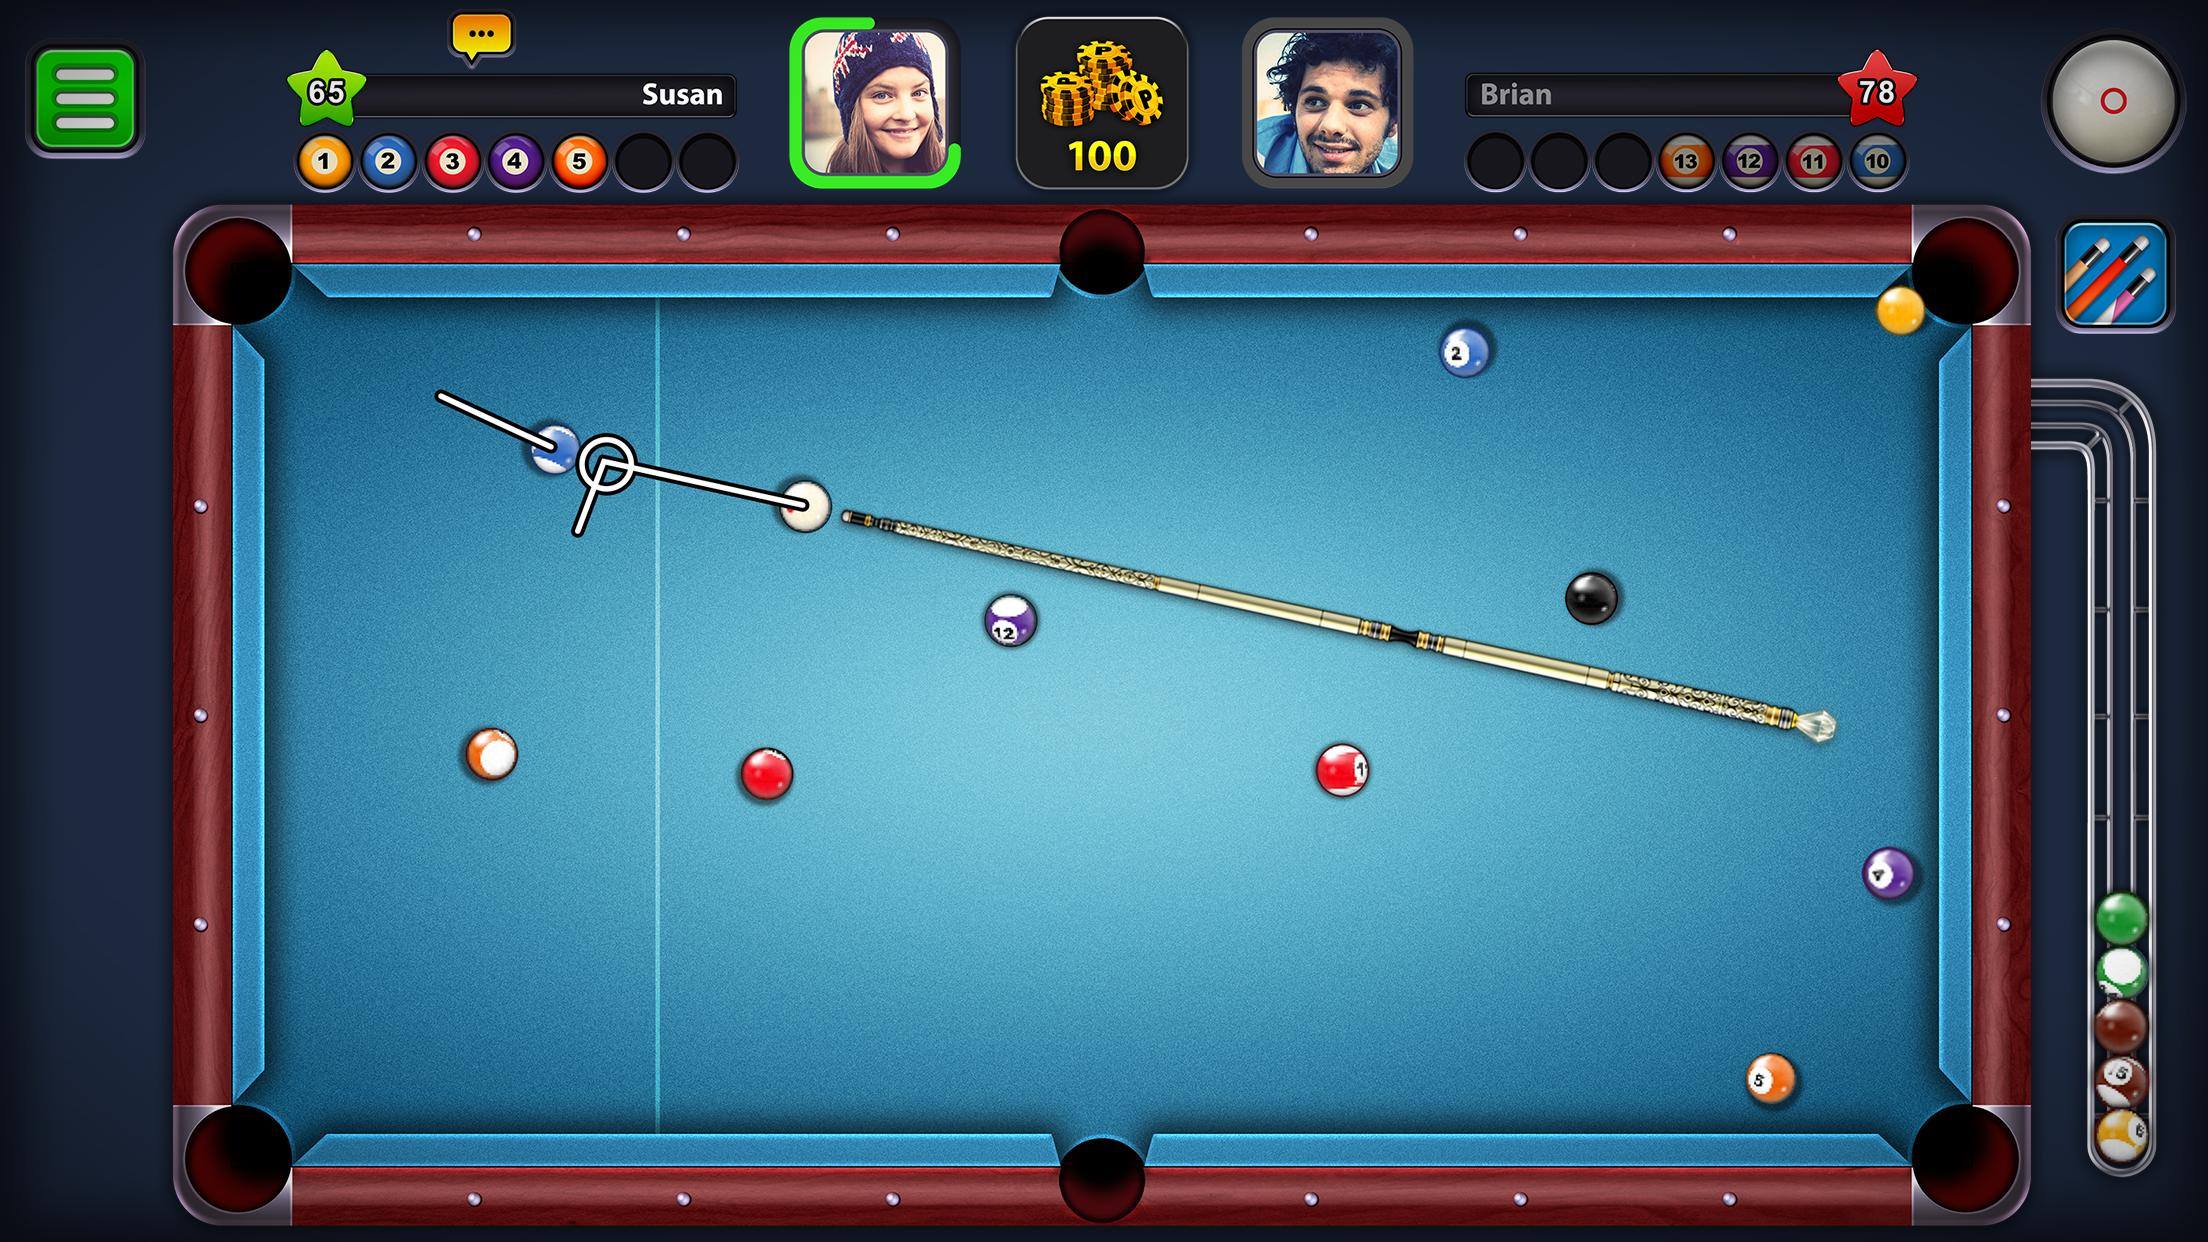 8 Ball Pool for Android - APK Download -